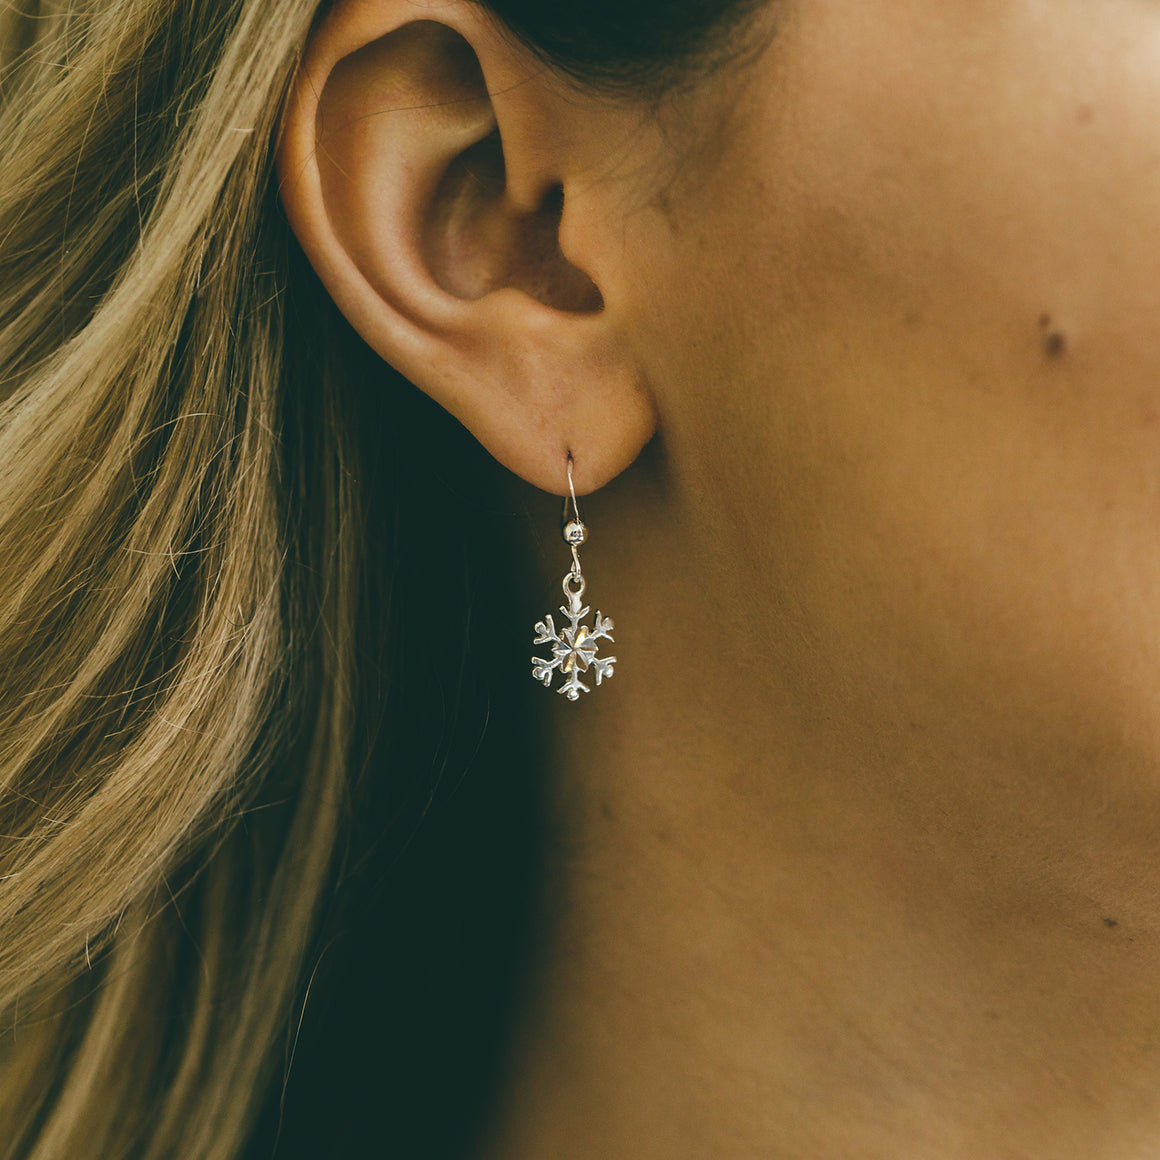 Dangly Silver Snowflake Earrings